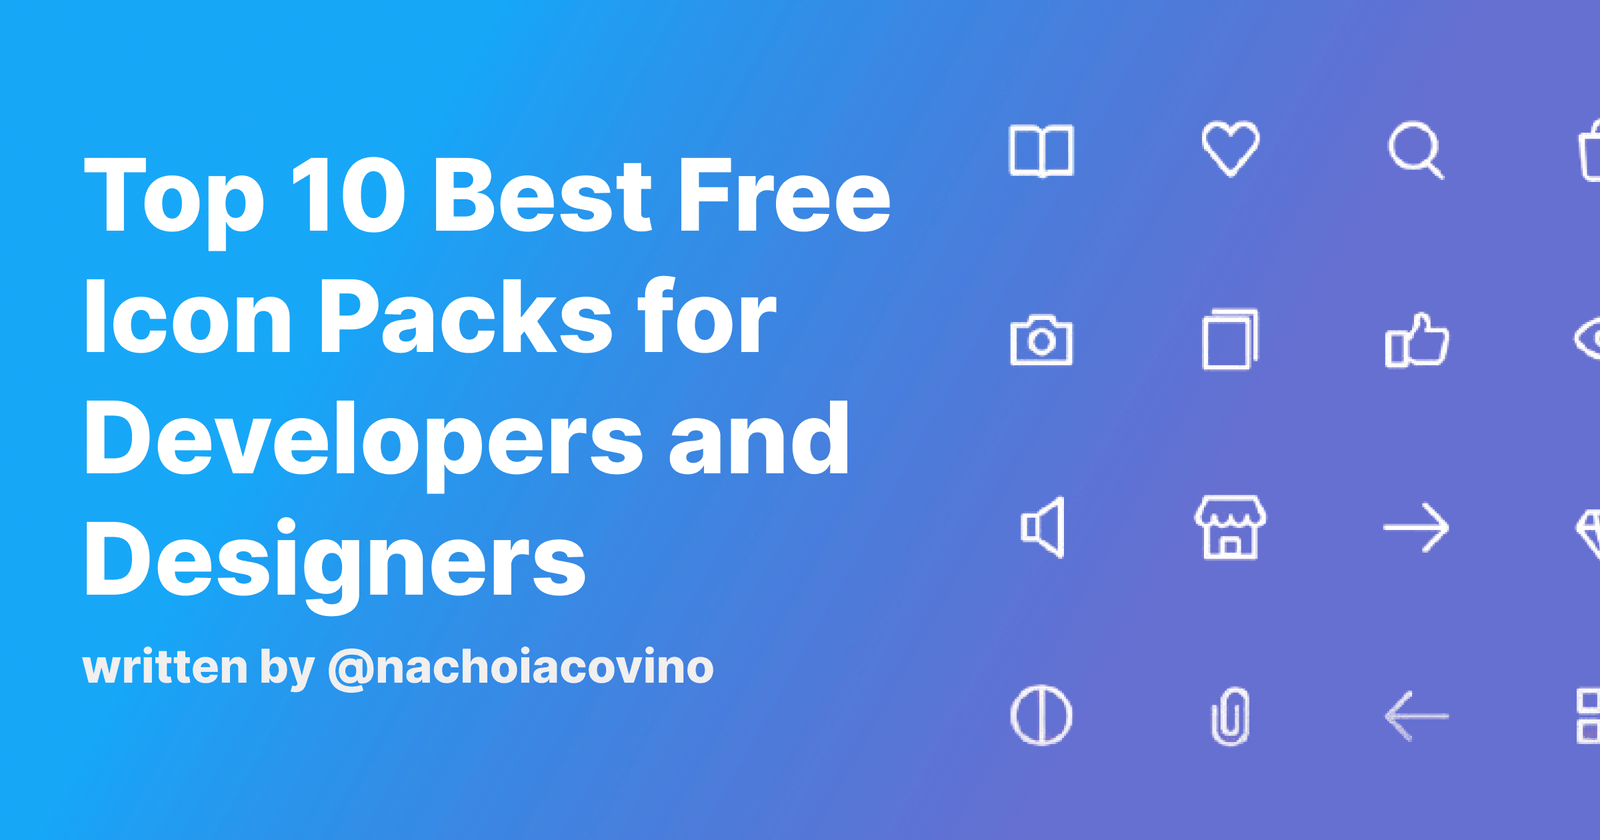 Top 10 Best Free Icon Packs for Developers and Designers